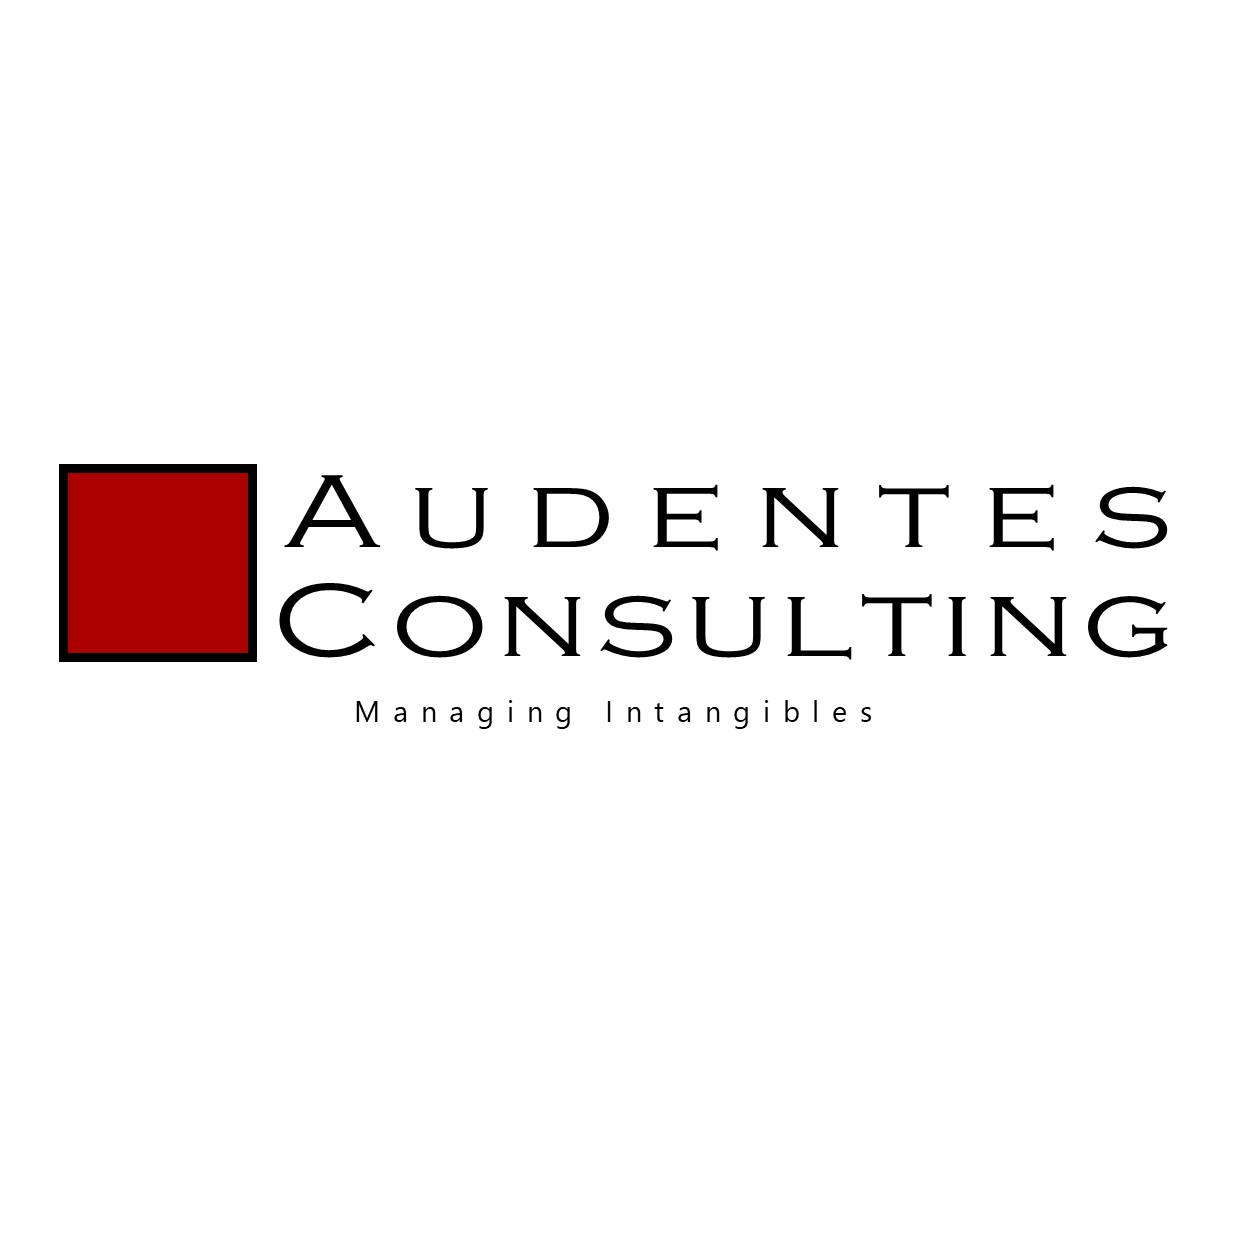 Audentes Consulting